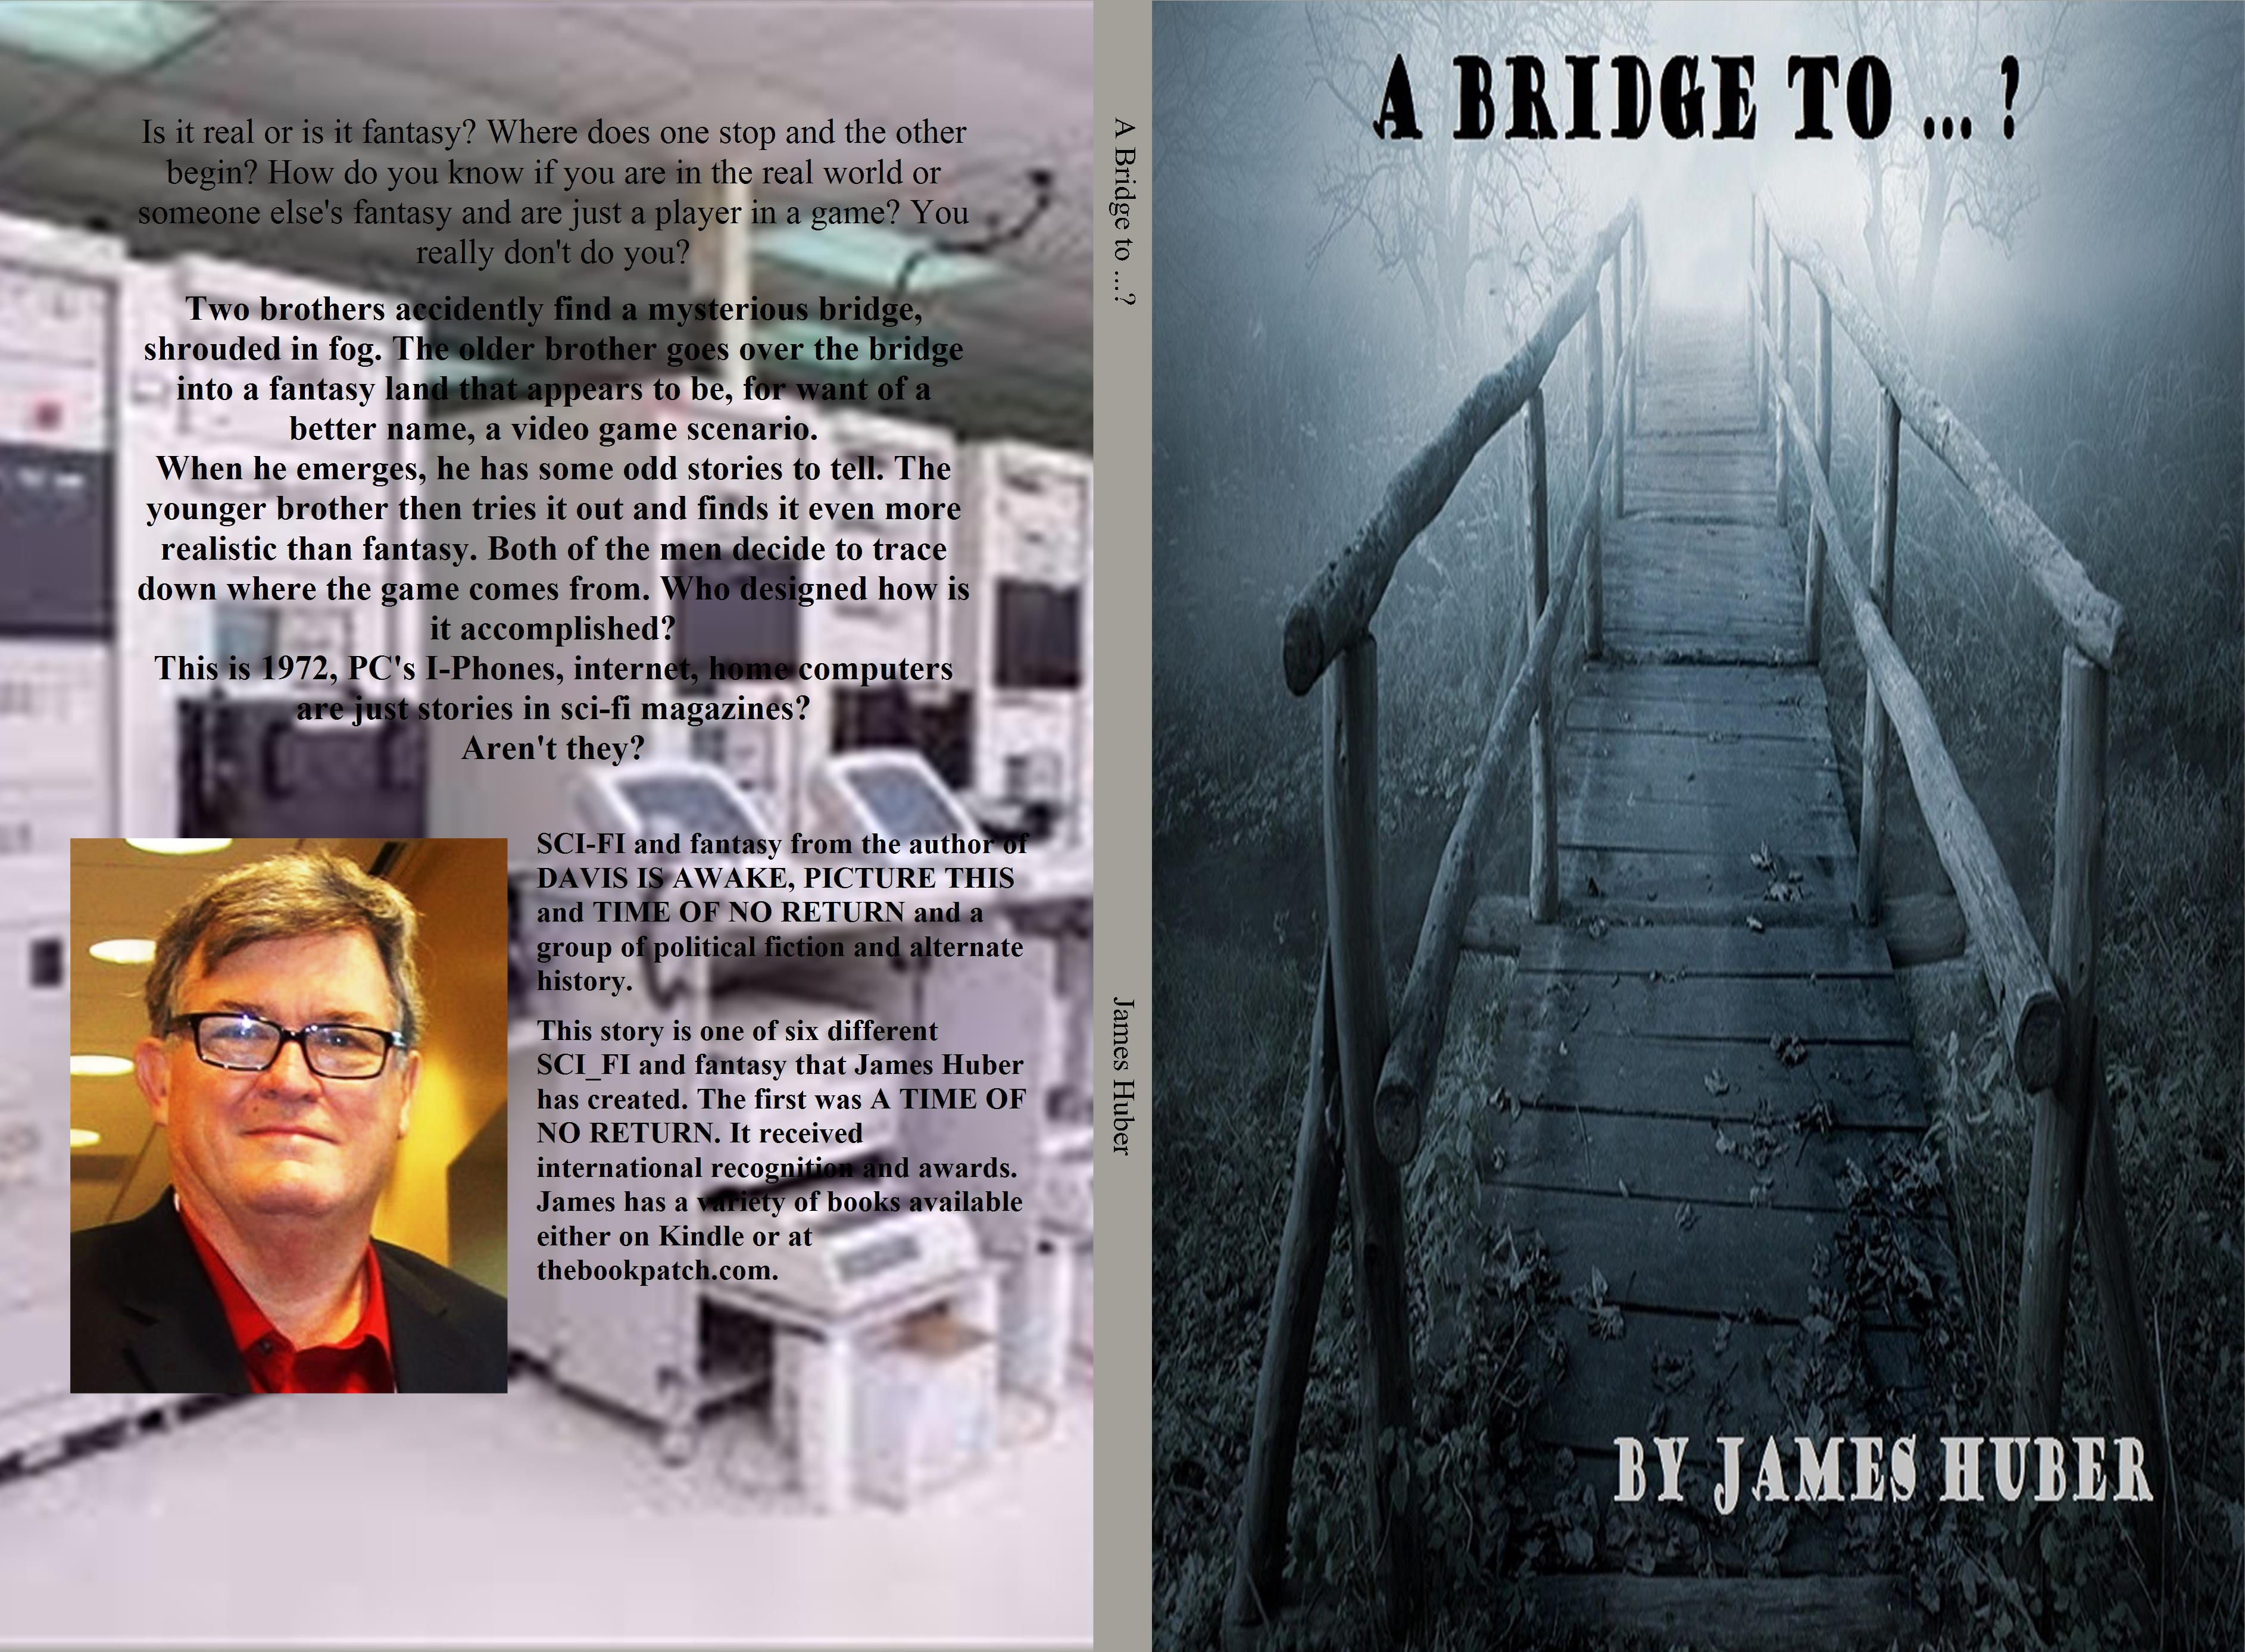 A Bridge to ...? cover image